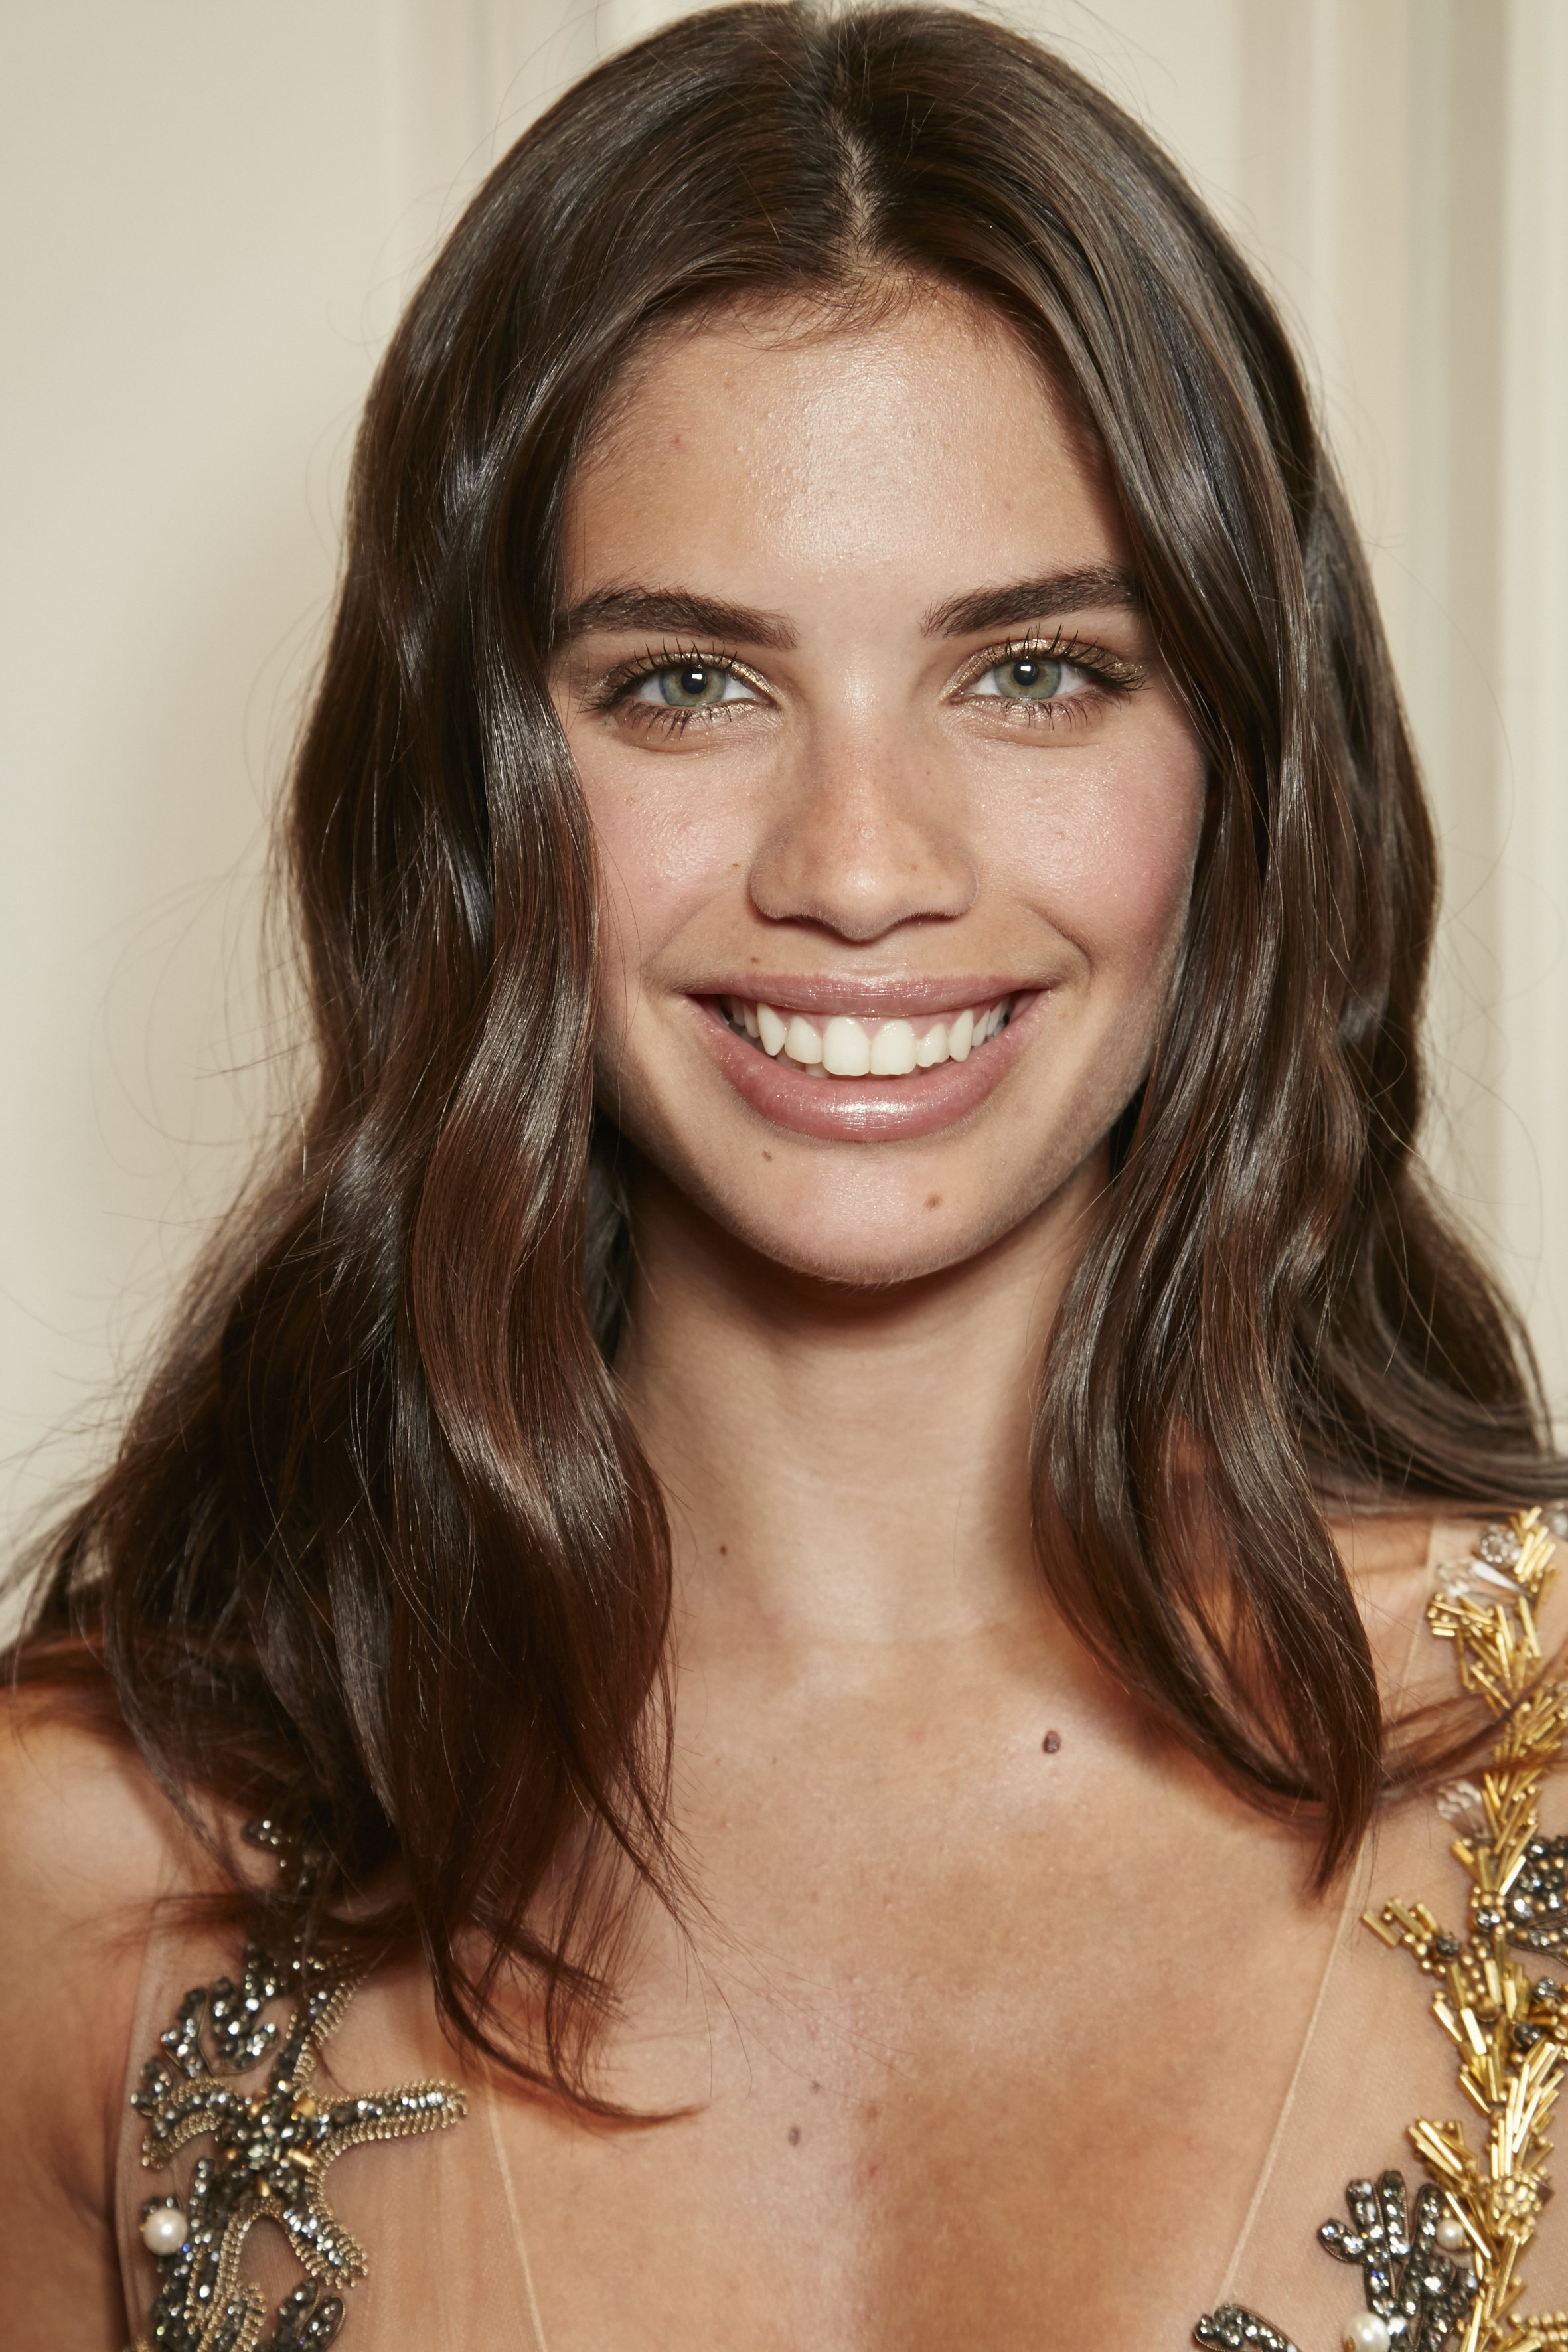 Medium hairstyles for thick hair: Taylor Hill with wavy mid-length brown hair